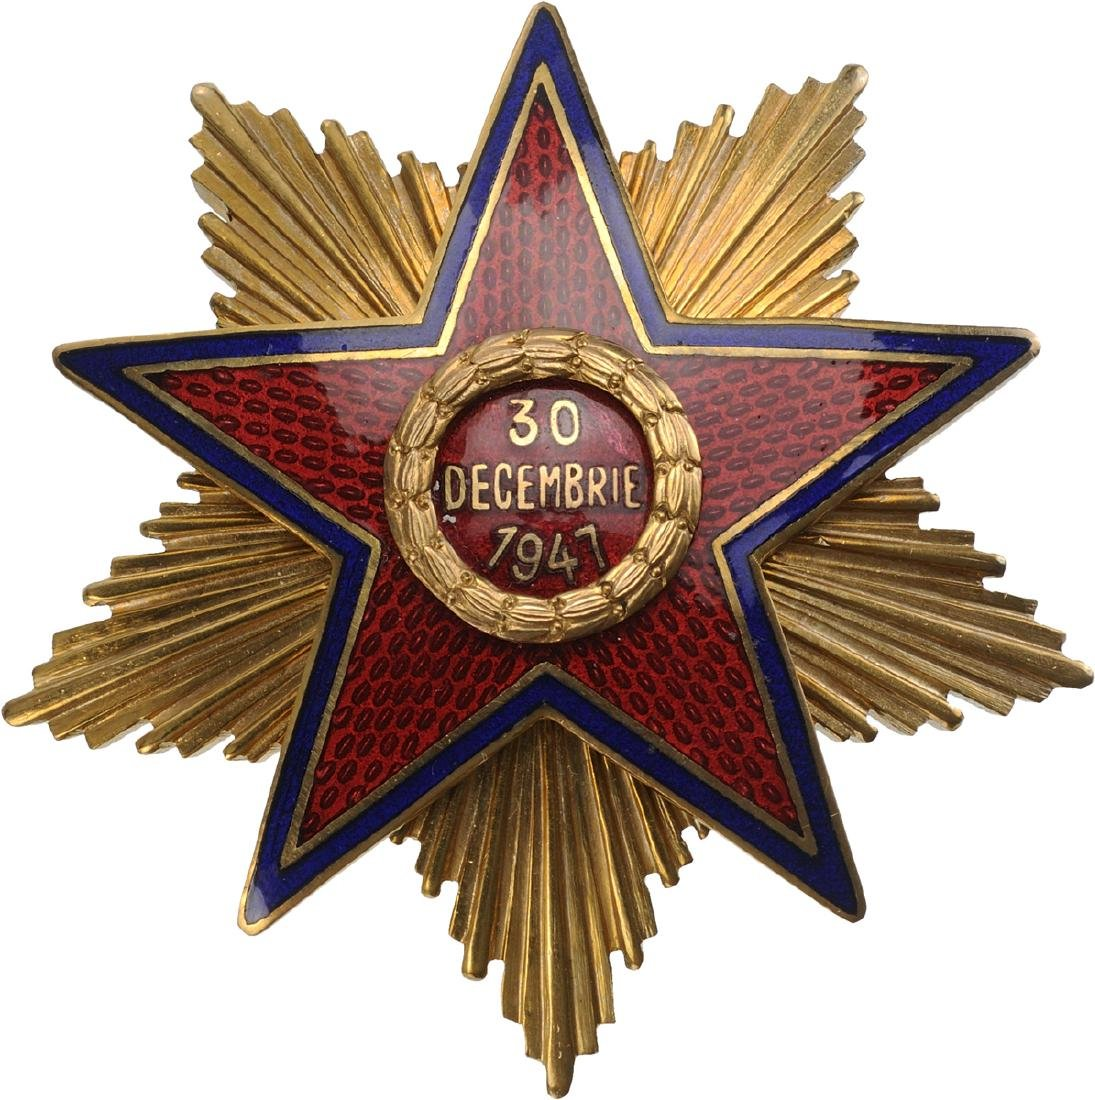 RPR - ORDER OF THE STAR OF ROMANIA, instituted in 1948 - 7